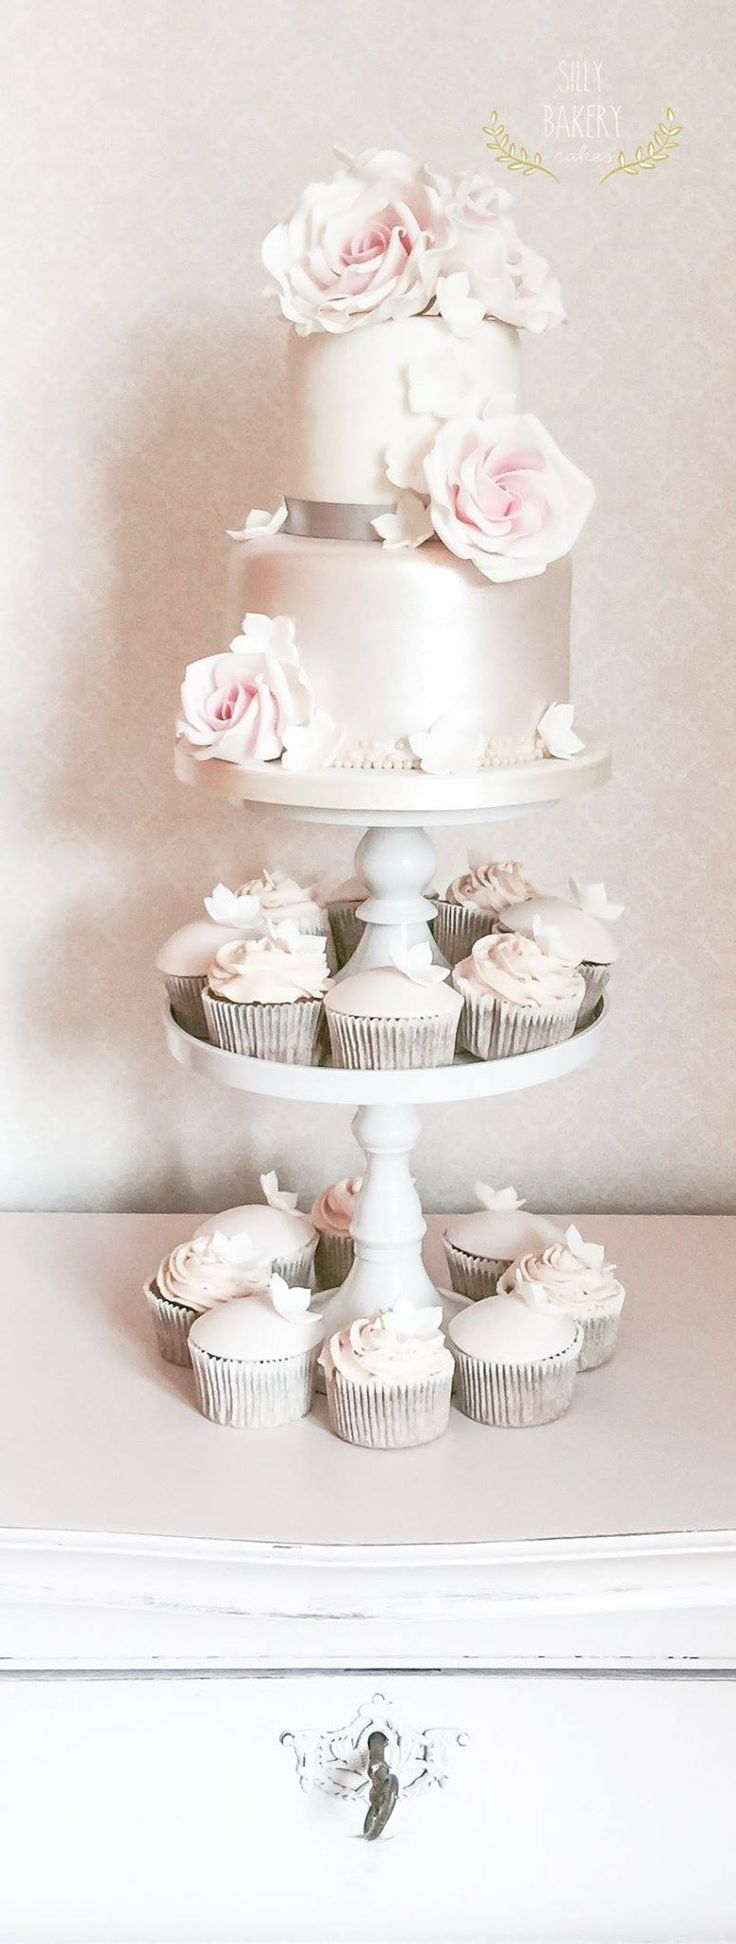 wedding-cakes-15-07142015-km